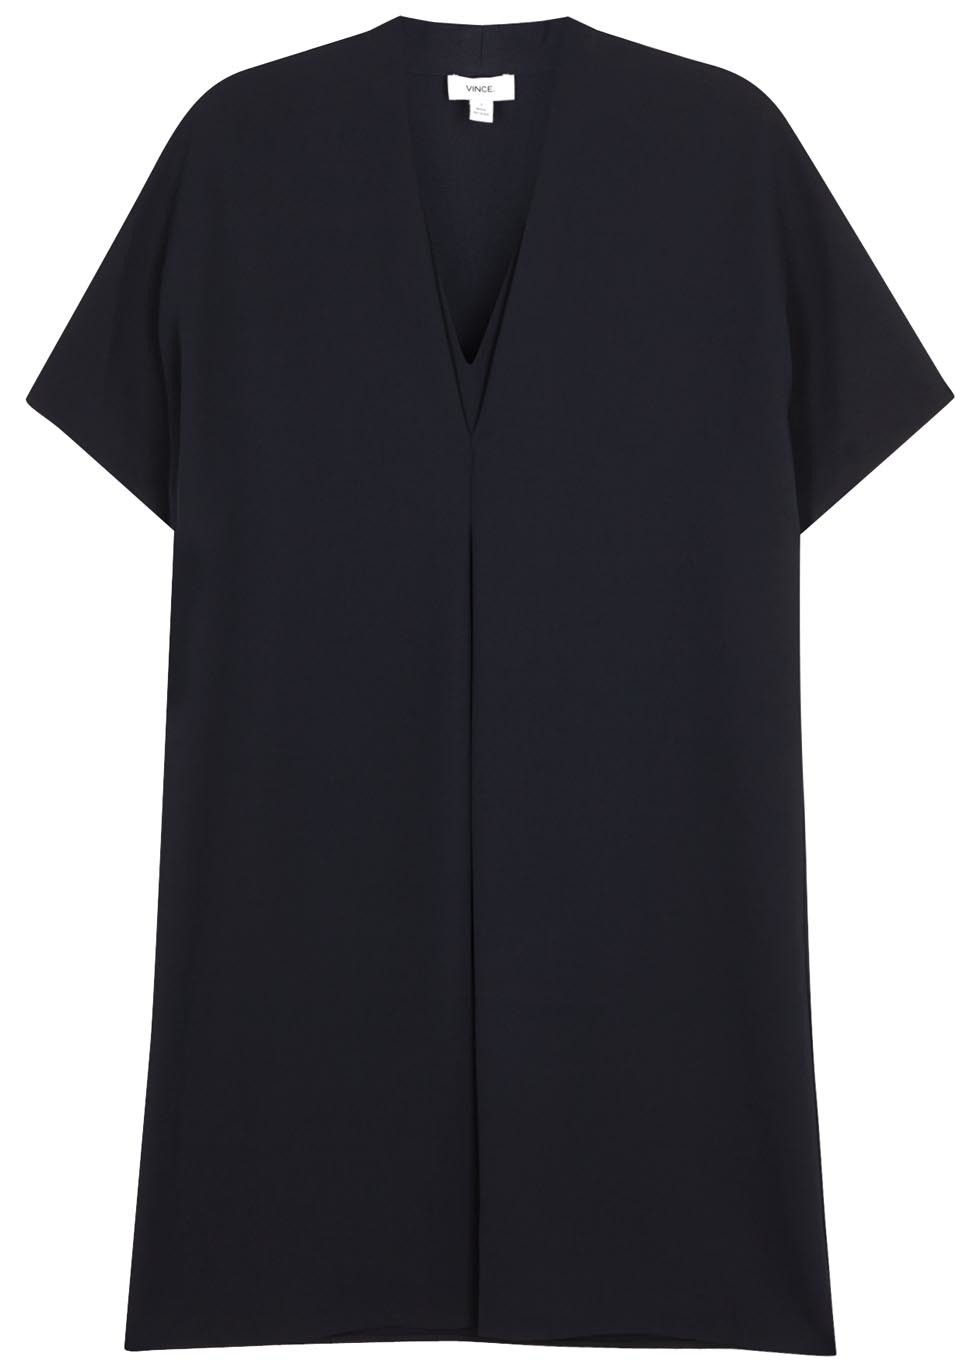 Midnight Blue Layered Effect Dress - style: shift; length: mid thigh; neckline: v-neck; pattern: plain; predominant colour: navy; occasions: evening; fit: body skimming; fibres: polyester/polyamide - 100%; sleeve length: short sleeve; sleeve style: standard; pattern type: fabric; texture group: other - light to midweight; season: s/s 2016; wardrobe: event